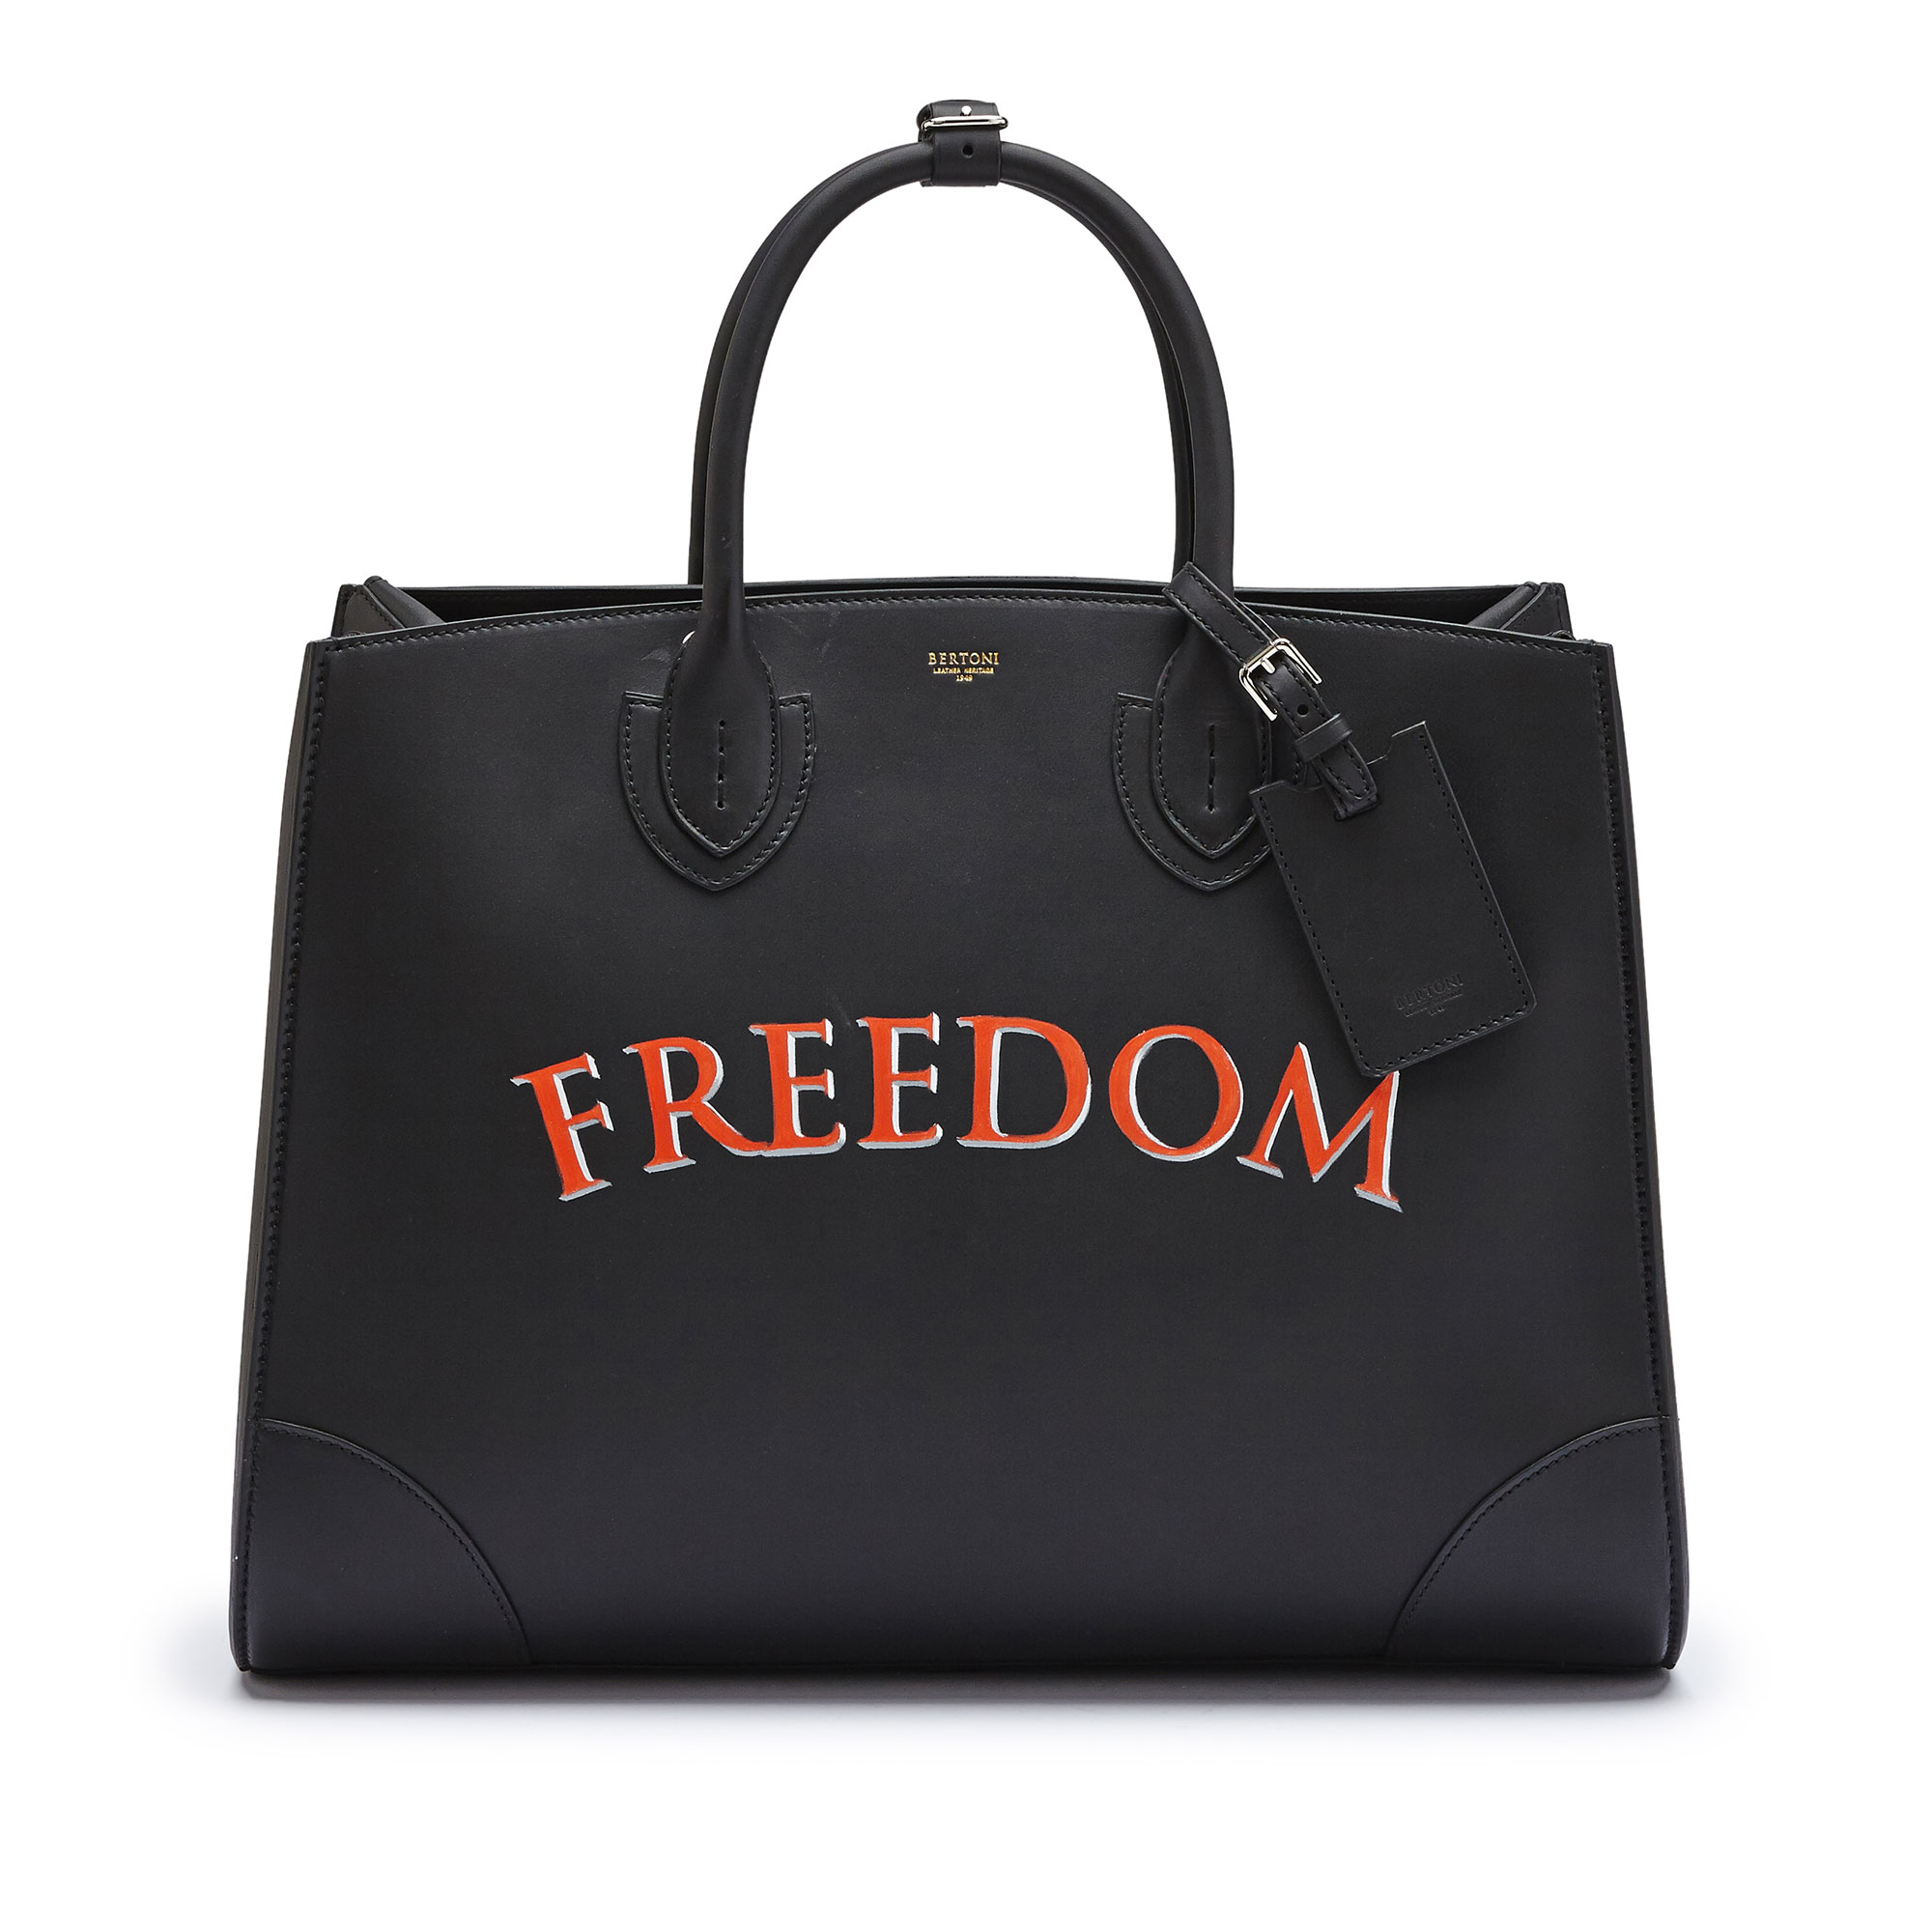 The black with write freedom french calf Maxi Darcy bag by Bertoni 1949 02